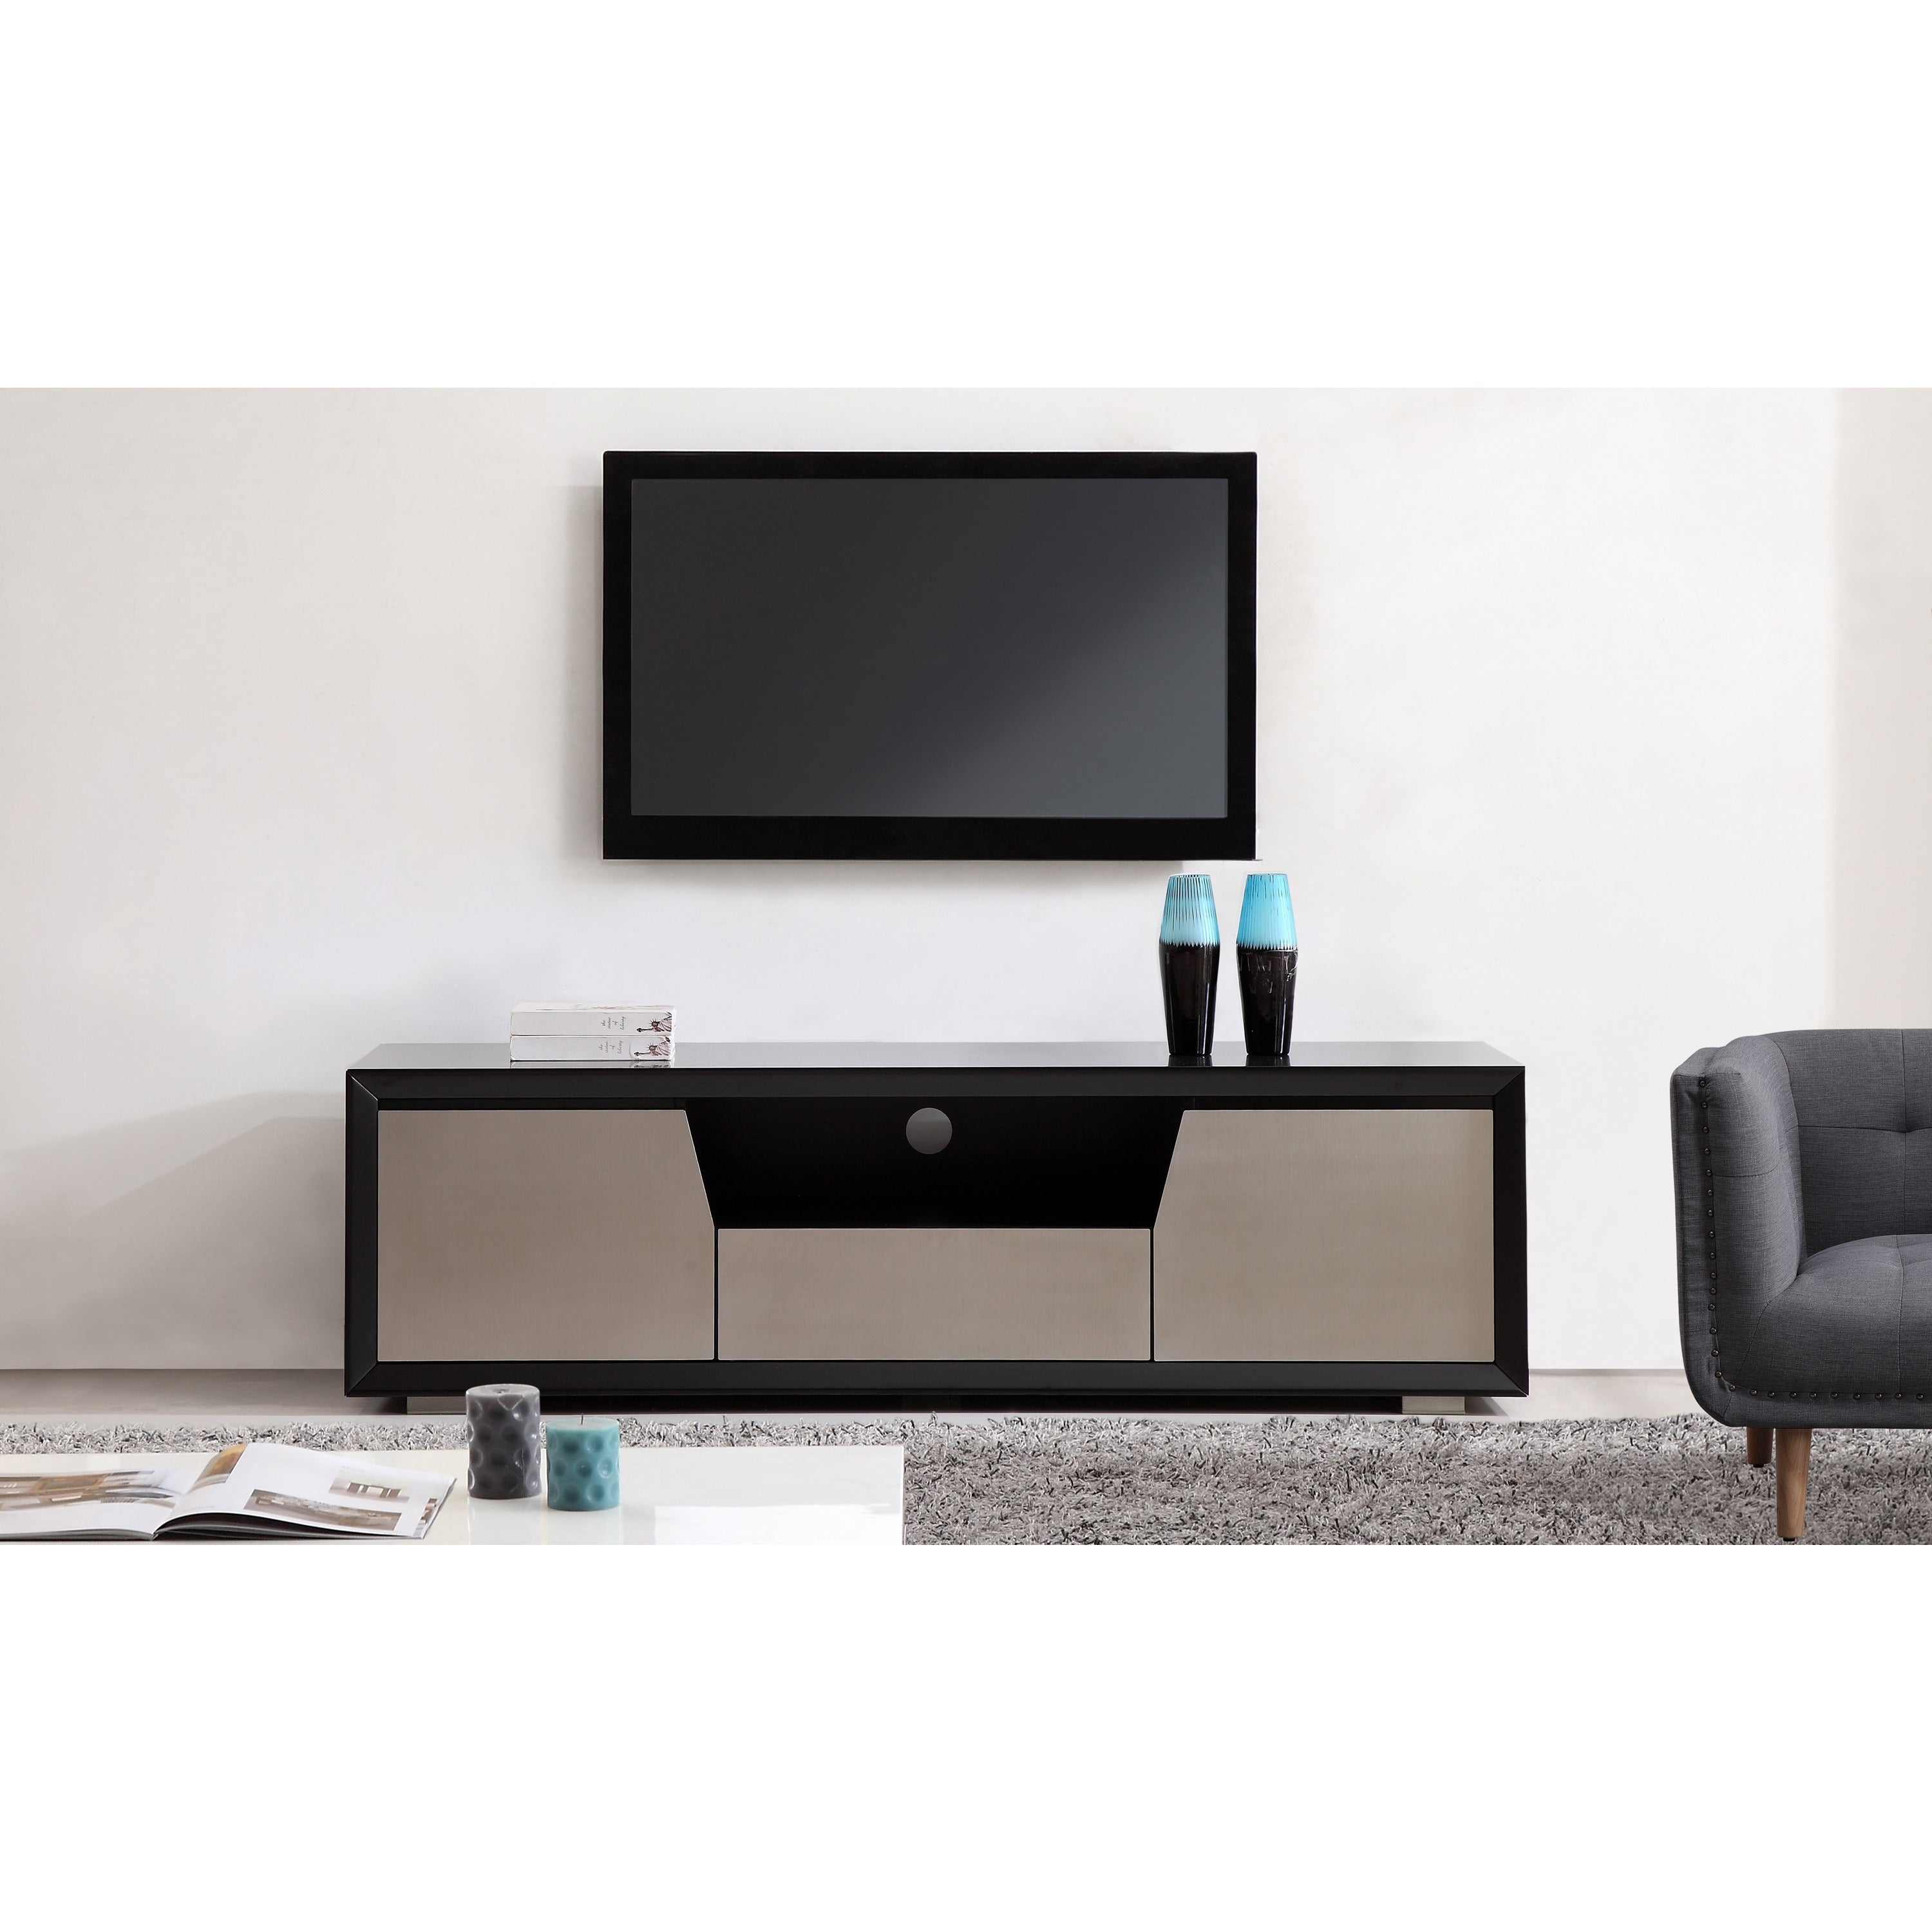 Element Matte Black Stainless Steel Tv Stand On Free Shipping Today 9766241